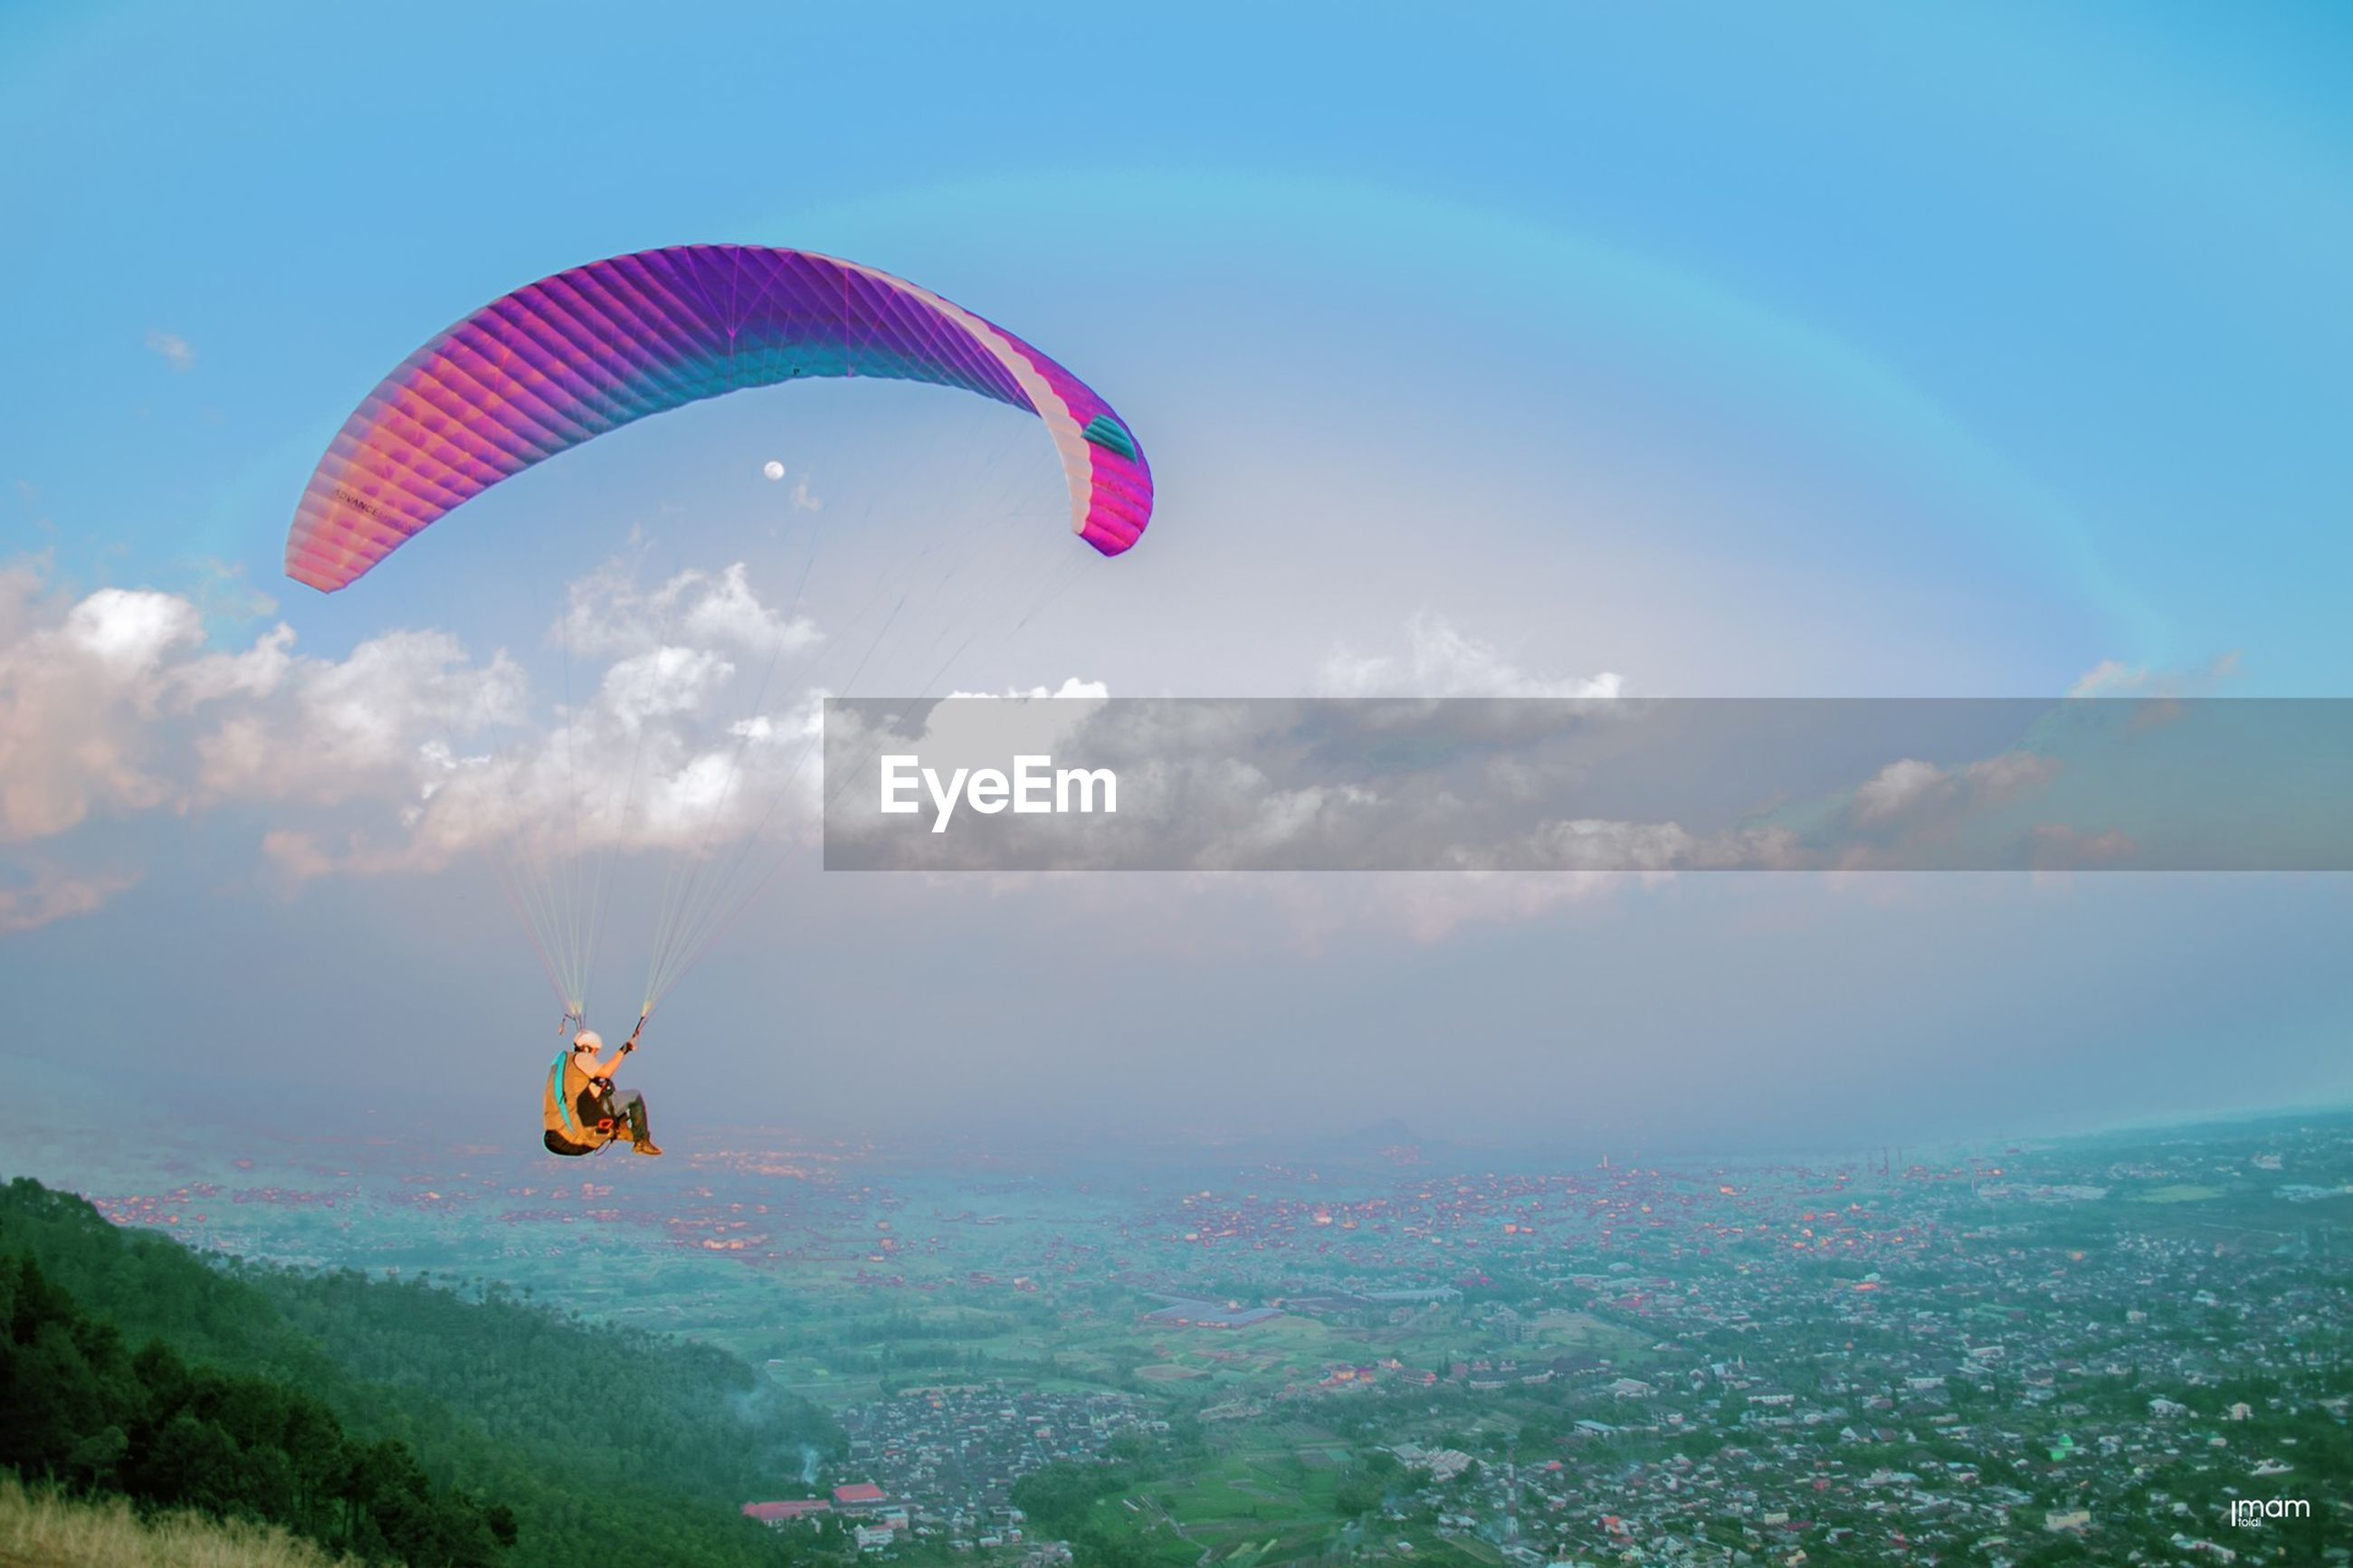 flying, mid-air, parachute, transportation, hot air balloon, sky, extreme sports, adventure, paragliding, sport, air vehicle, mode of transport, leisure activity, travel, multi colored, exhilaration, cloud - sky, scenics, flag, low angle view